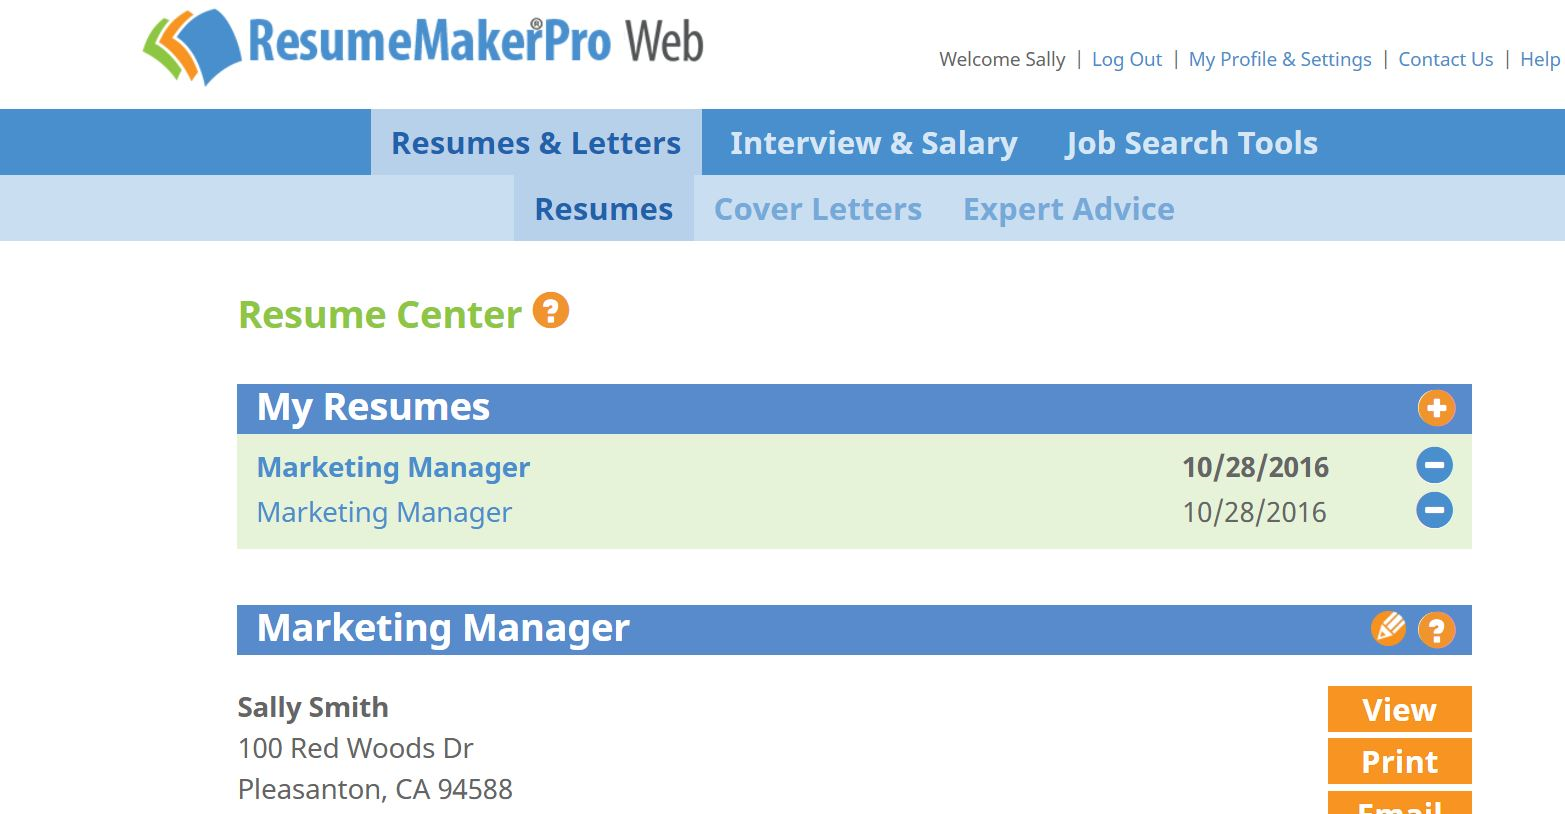 ResumeMakerPro Web - Annual Subscription, Productivity Software, Job Search & Business Card Software Screenshot